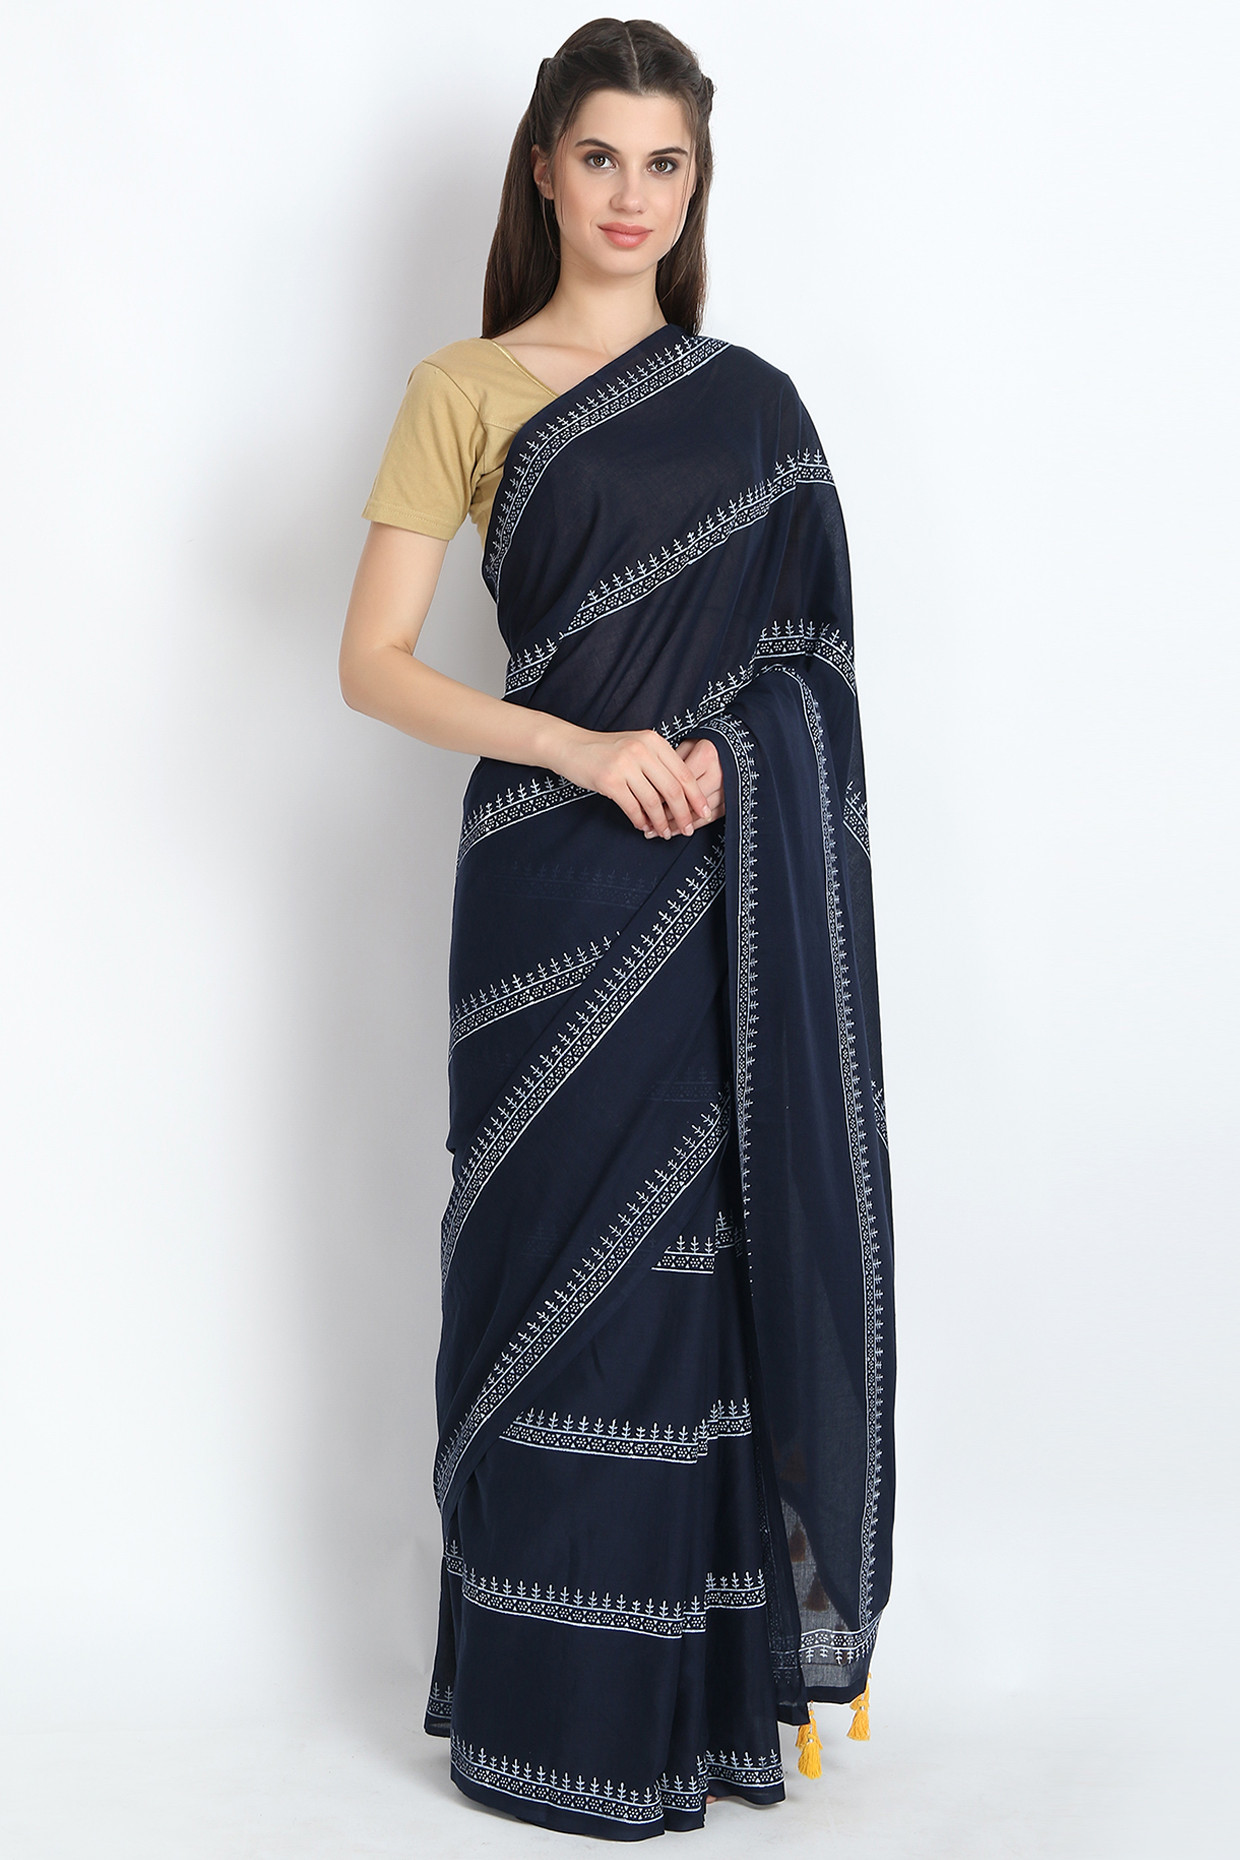 Fabulous Hand Block Printed Cotton Mulmul Saree In Midnight Blue by Palash